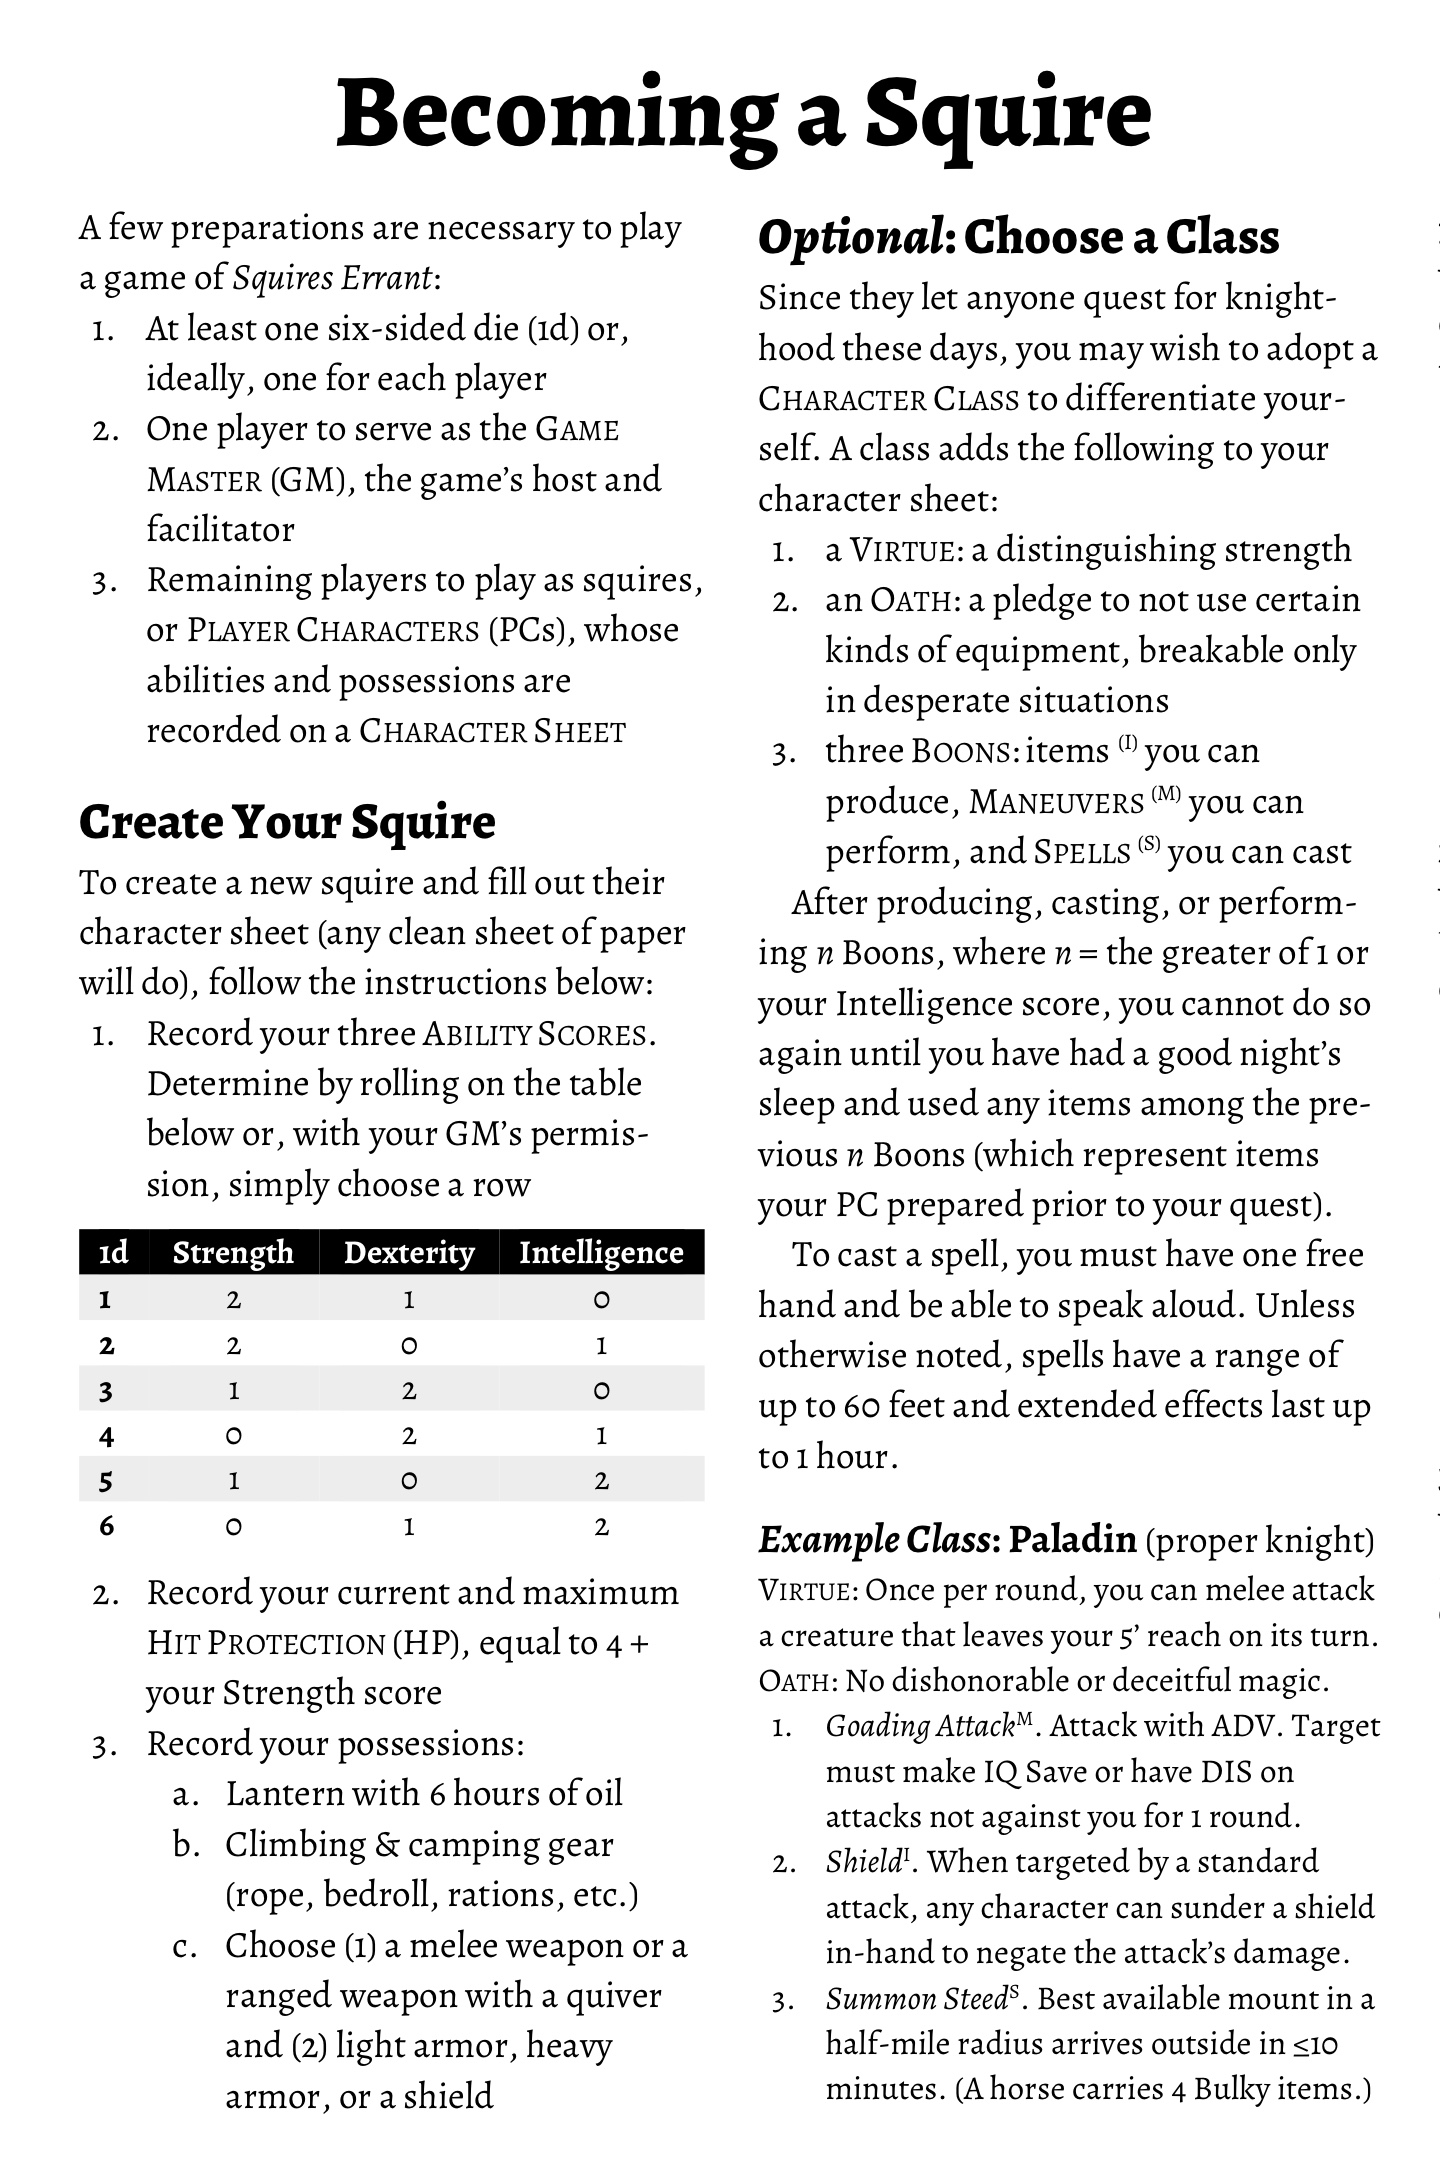 Rules for Creating a Character